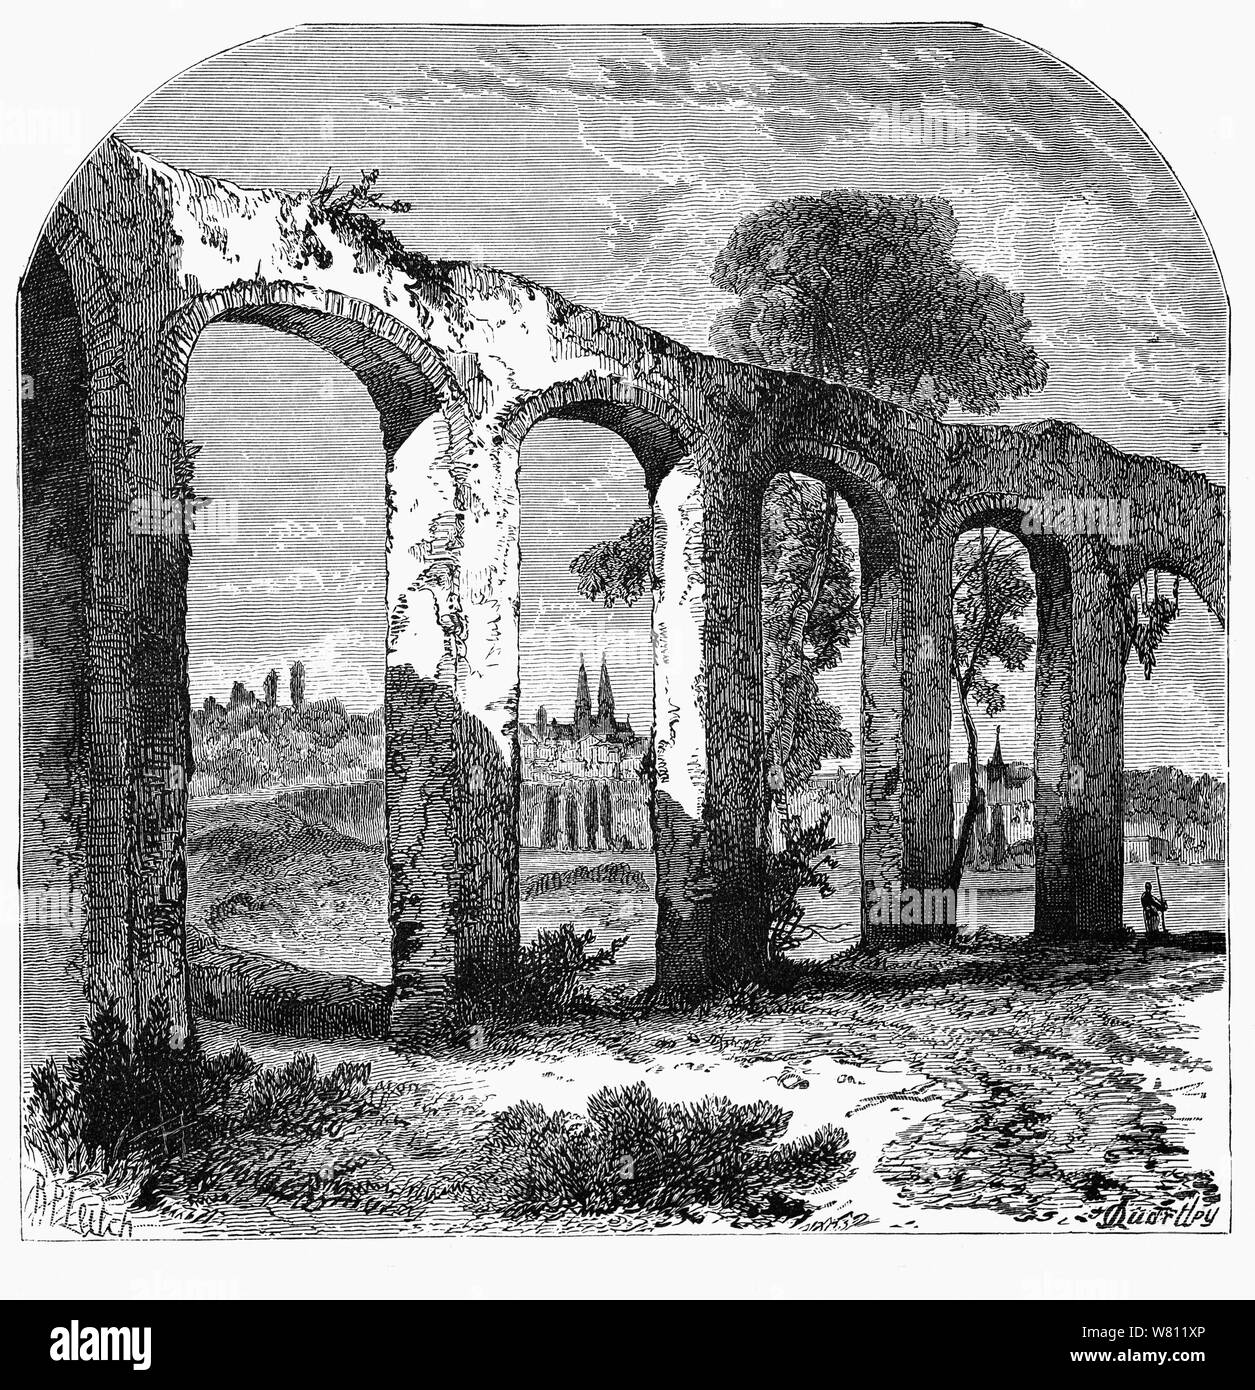 One of the three aqueducts built by the Romans in Poitiers, a city on the Clain river in west-central France. Founded by the Celtic tribe of the Pictones, it as known as the oppidum Lemonum before Roman influence.  The extensive ensemble of Roman constructions suggests Poitiers was a town of first importance, possibly even the capital of the Roman province of Gallia Aquitania during the 2nd century. Stock Photo